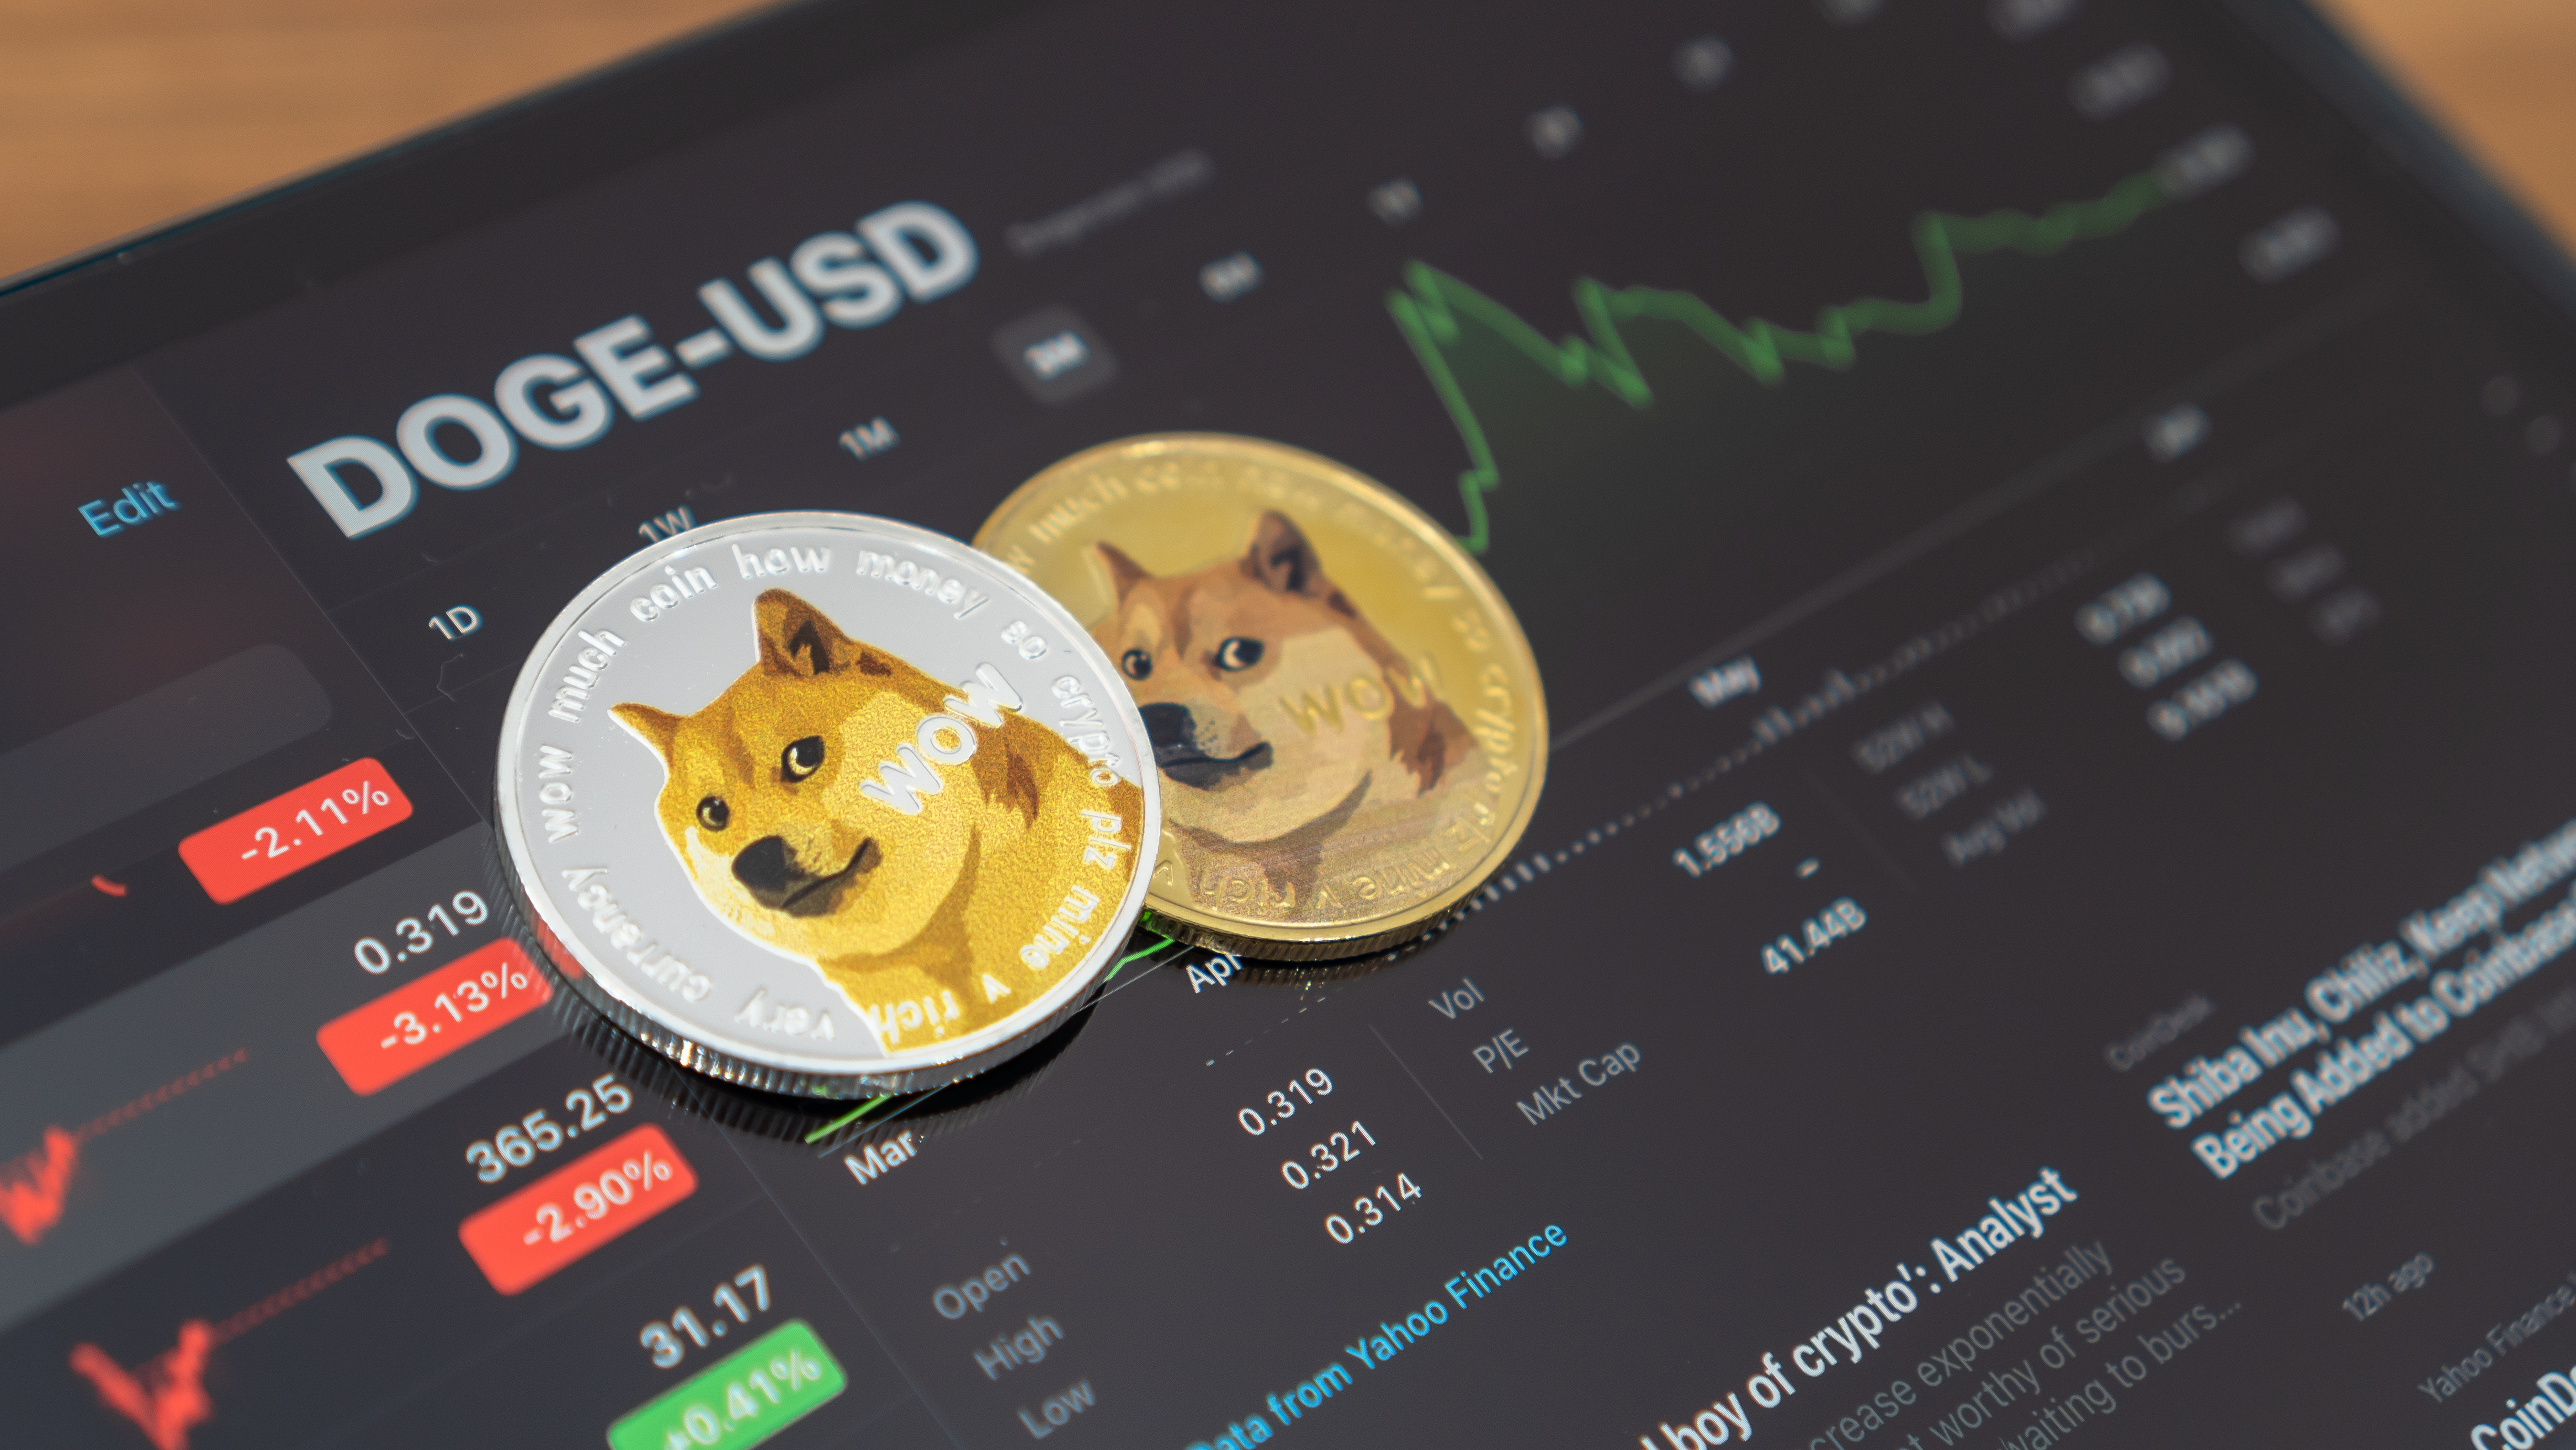 Dogecoin: What You Should Know About the Cryptocurrency That Started as a Meme